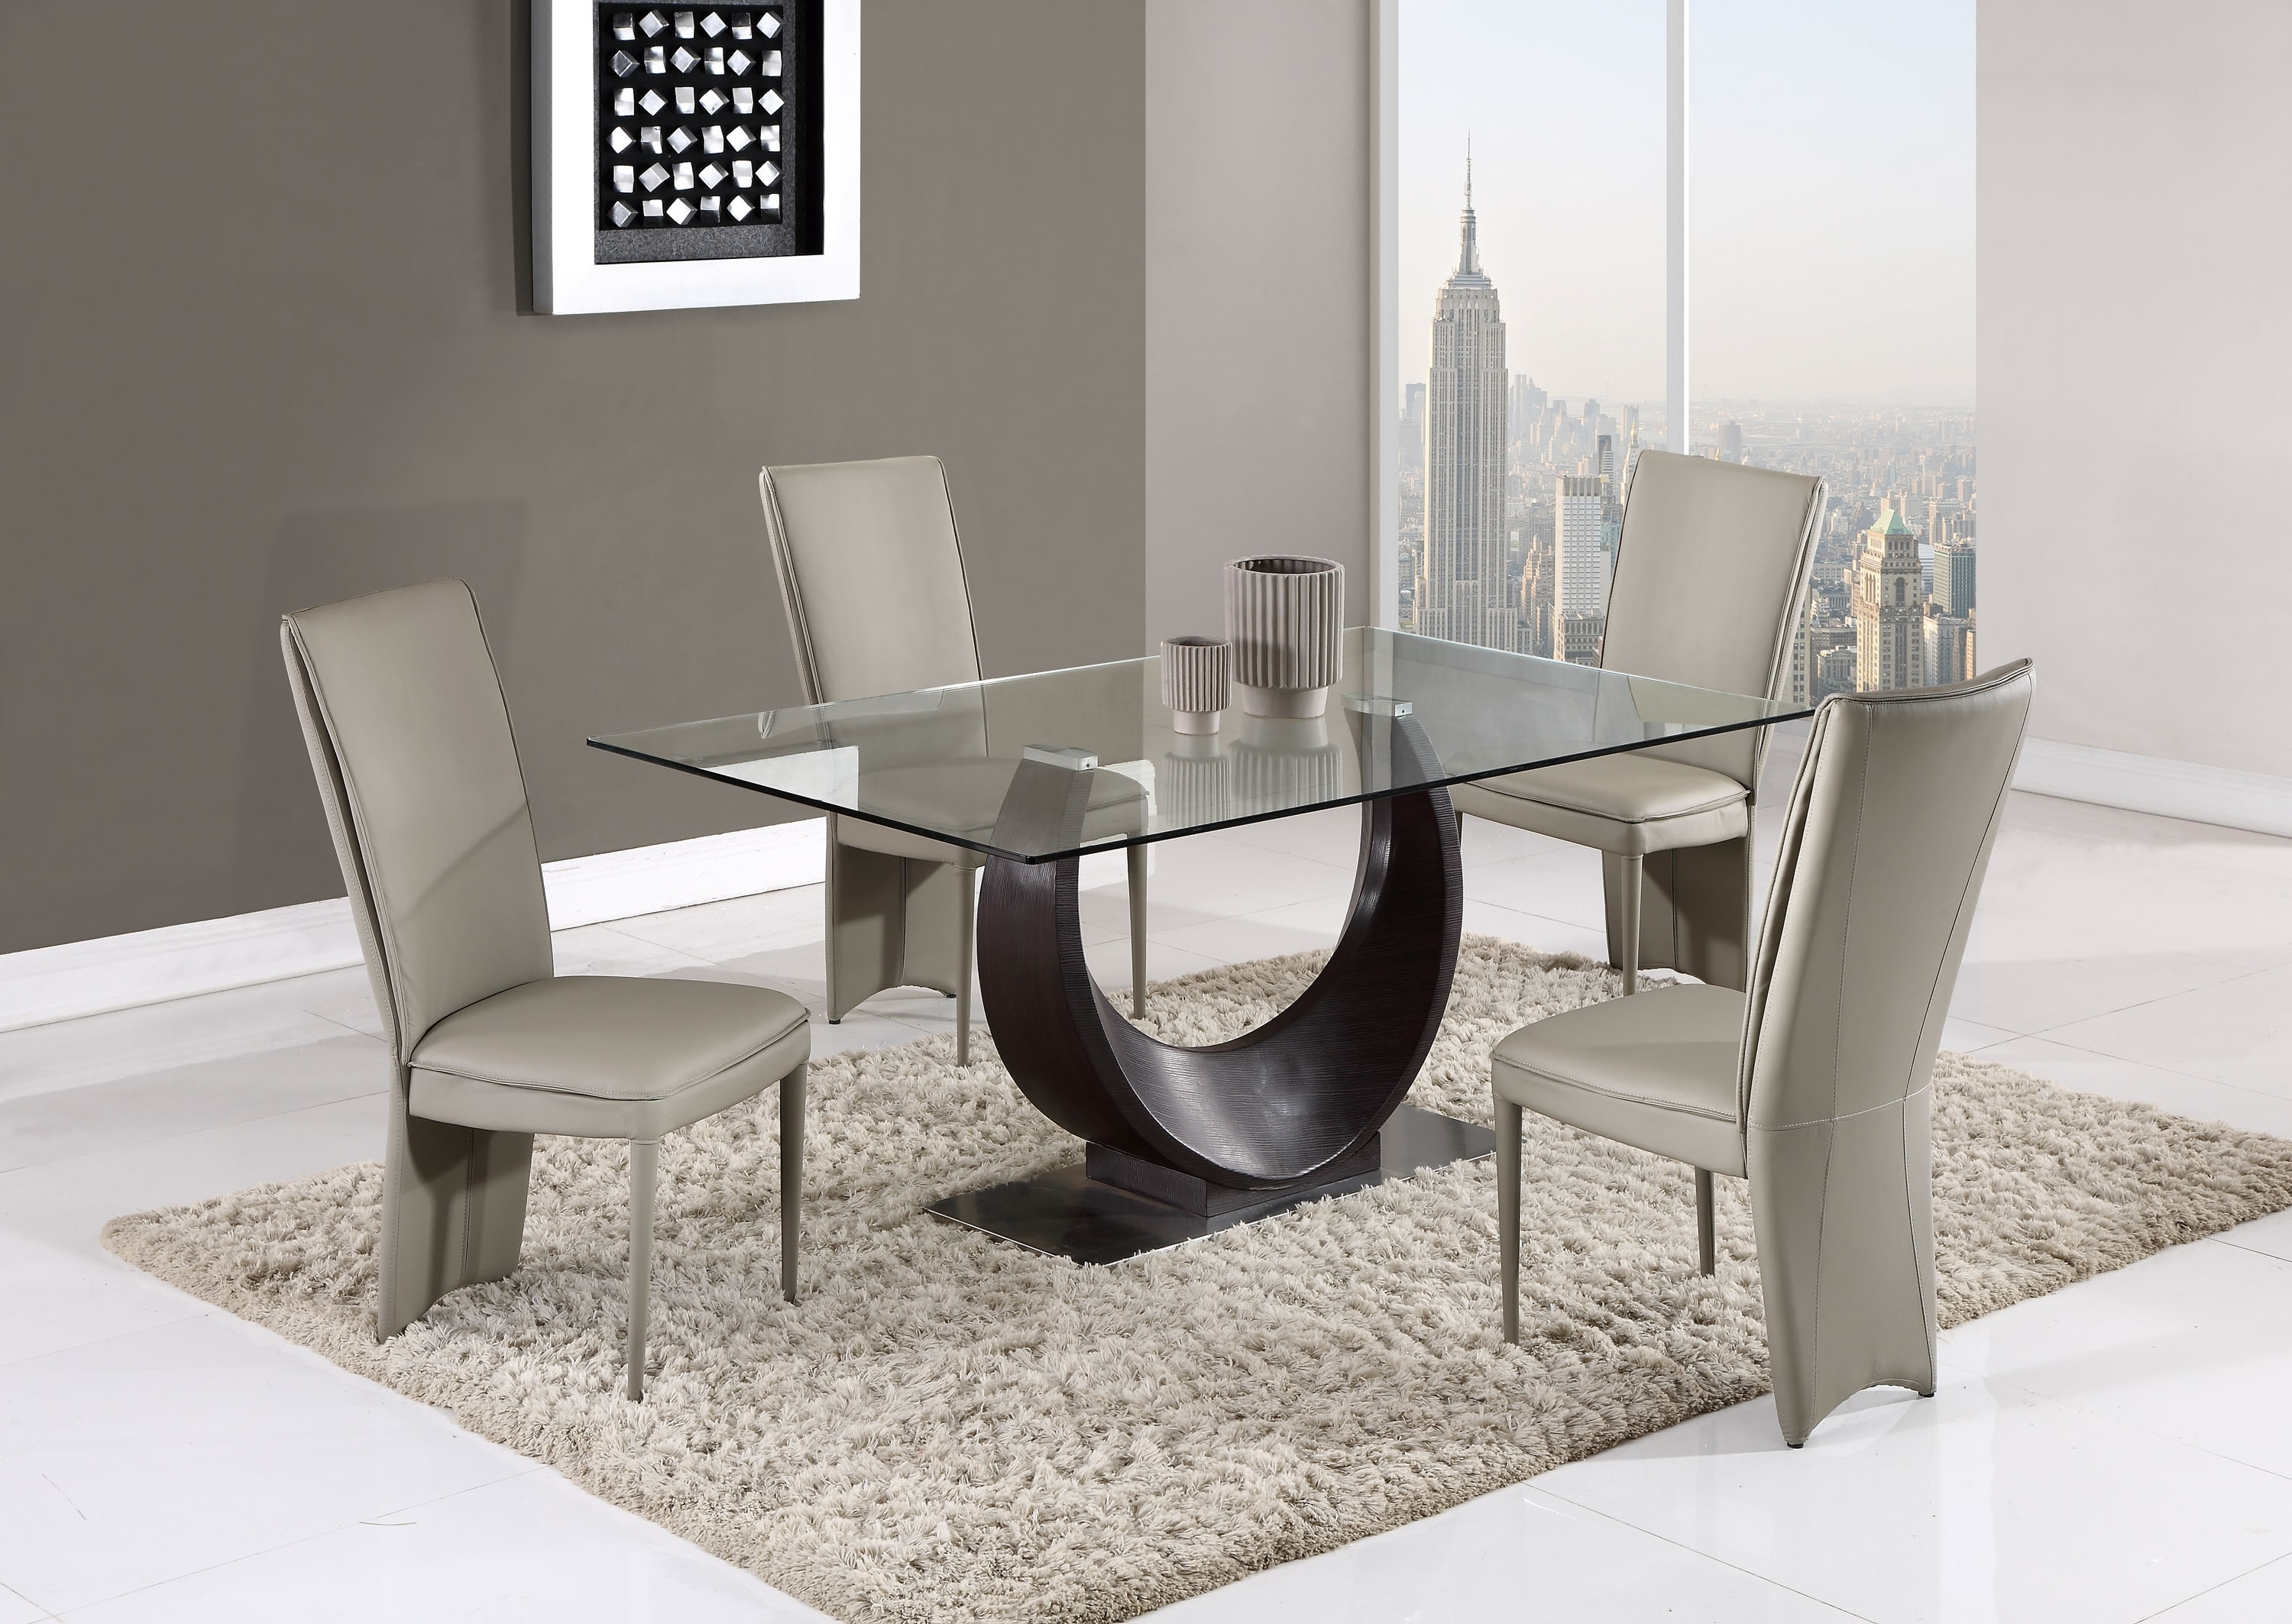 2018 Half Moon Dining Table Sets Pertaining To Contemporary Half Moon Glass Table With Taupe Side Chairs San Jose (View 24 of 25)